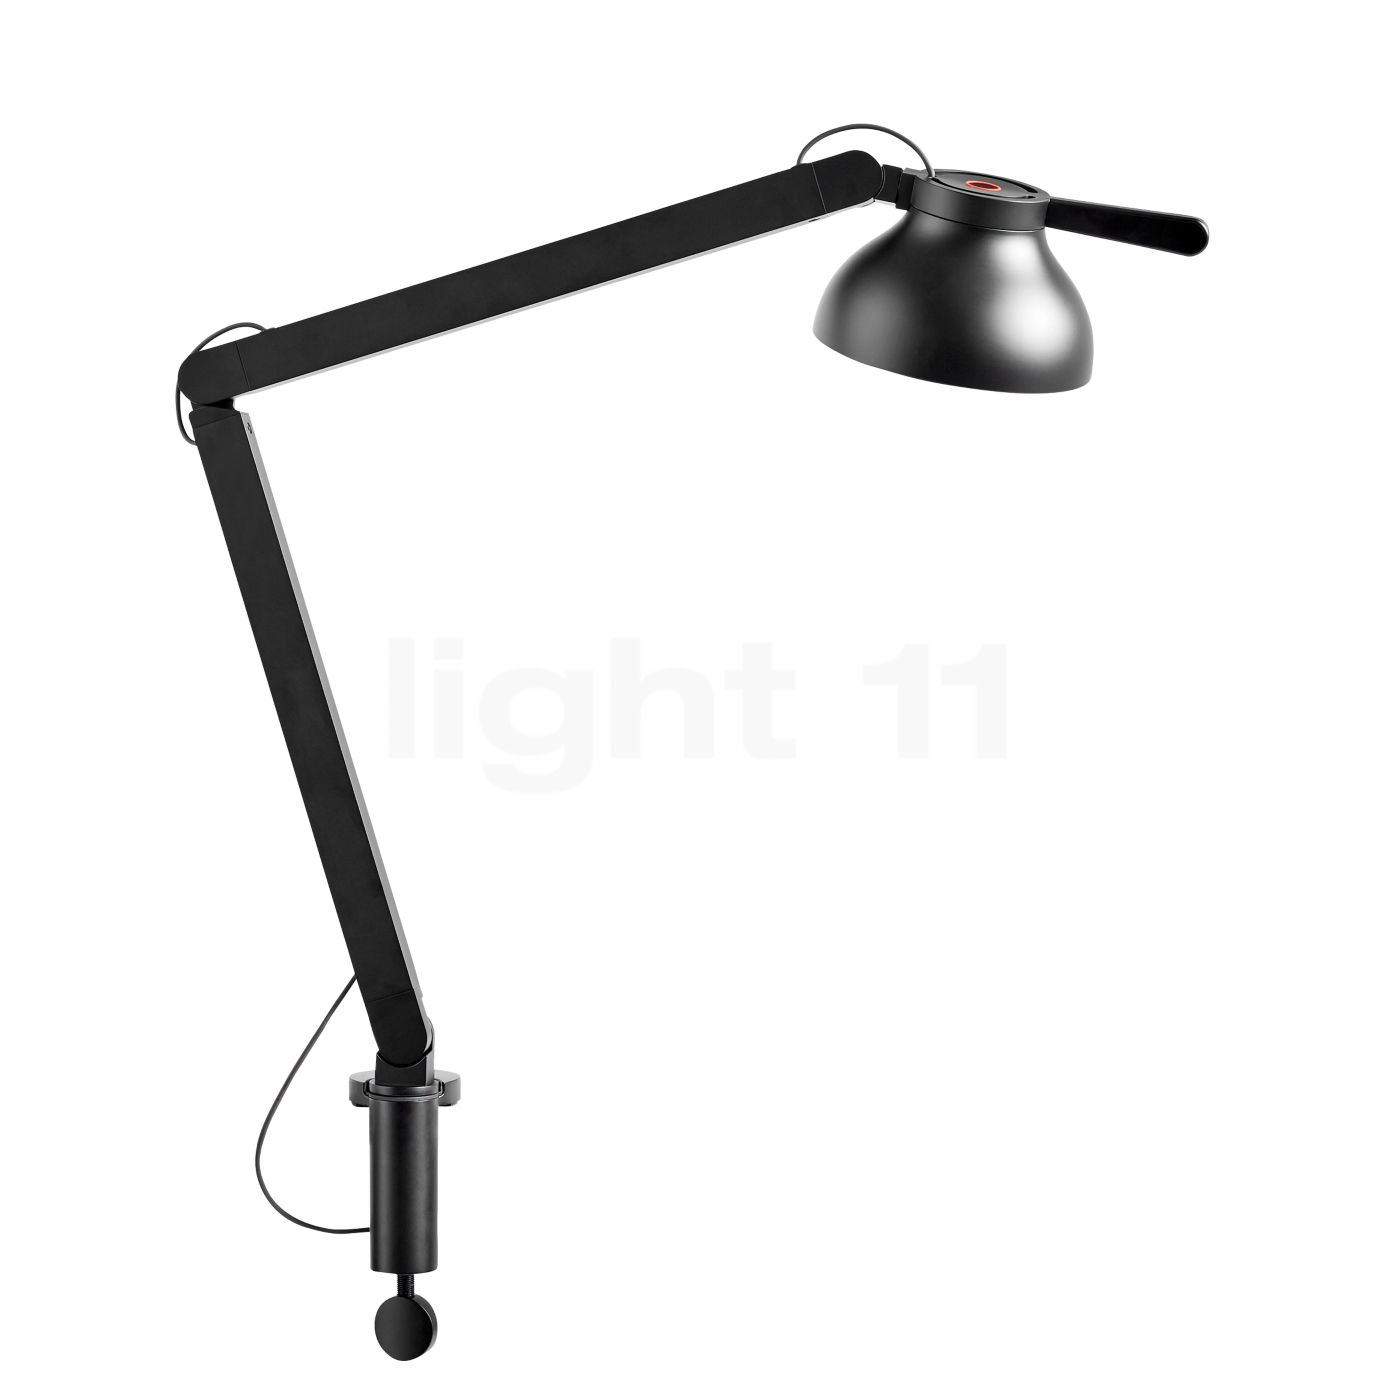 Pc De Pince Double Table Hay Chevet Lampe Arm Avec b6gf7y